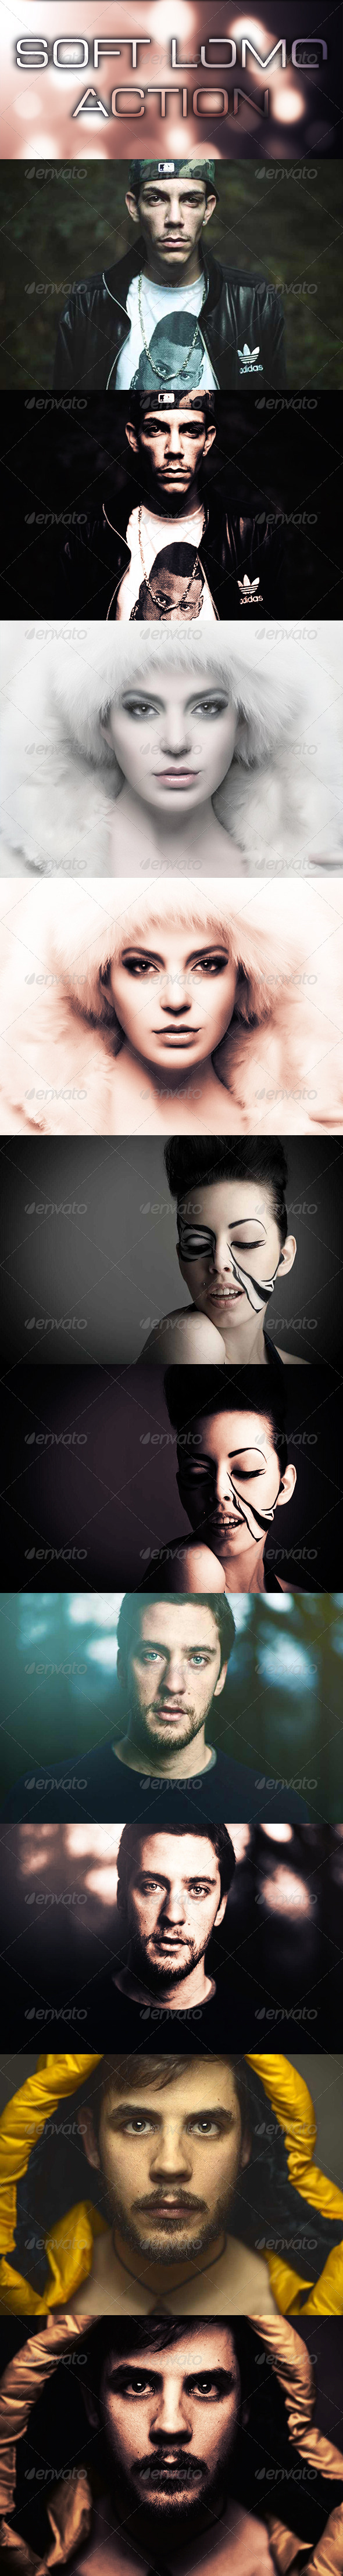 GraphicRiver Soft Lomo Action 6926292